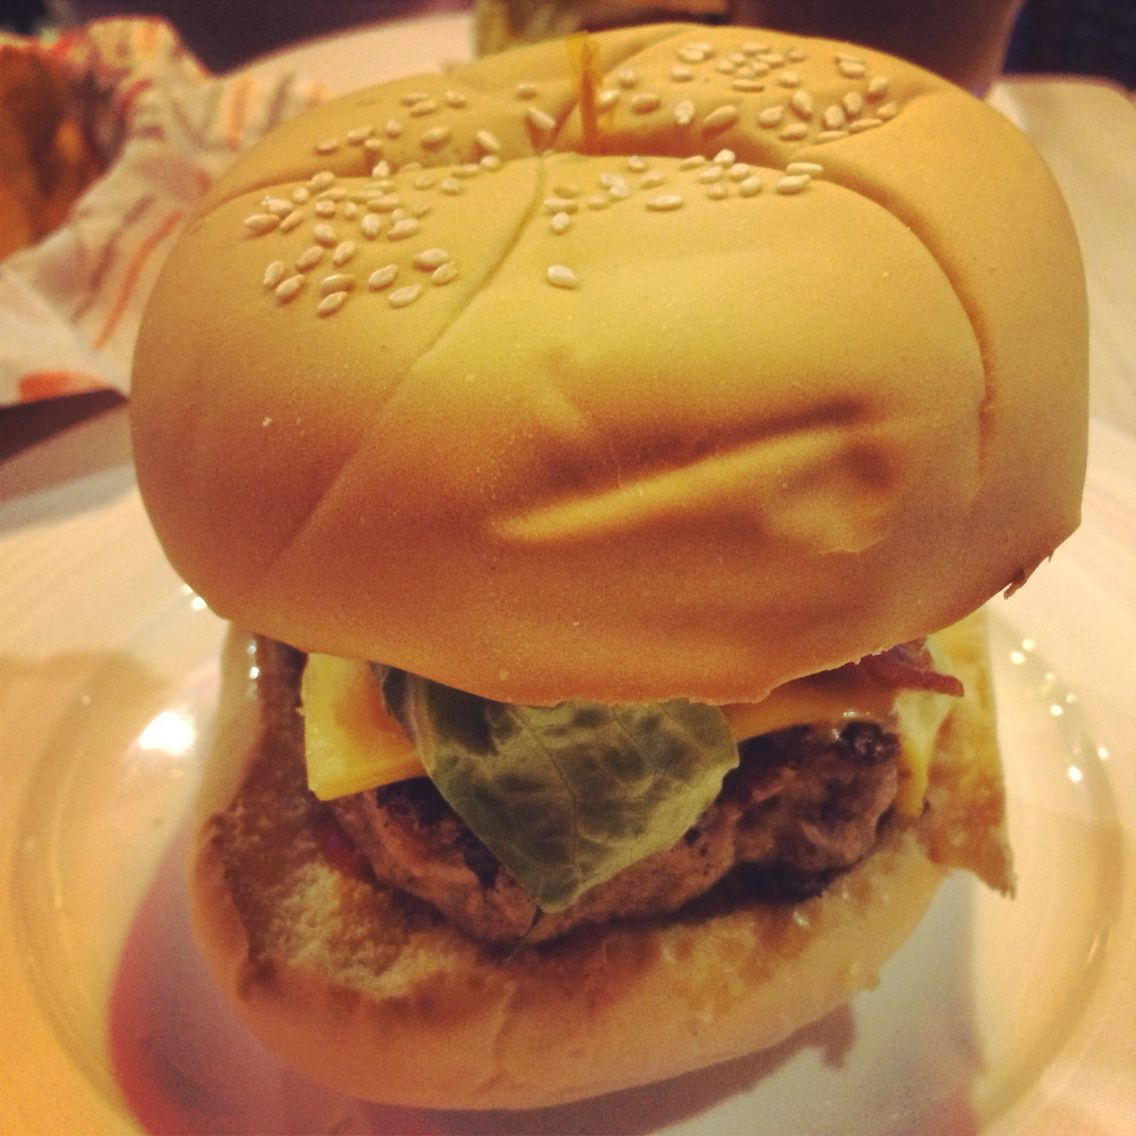 Every inch of you is perfect from the bottom to the top... :) Welcome to the burger world